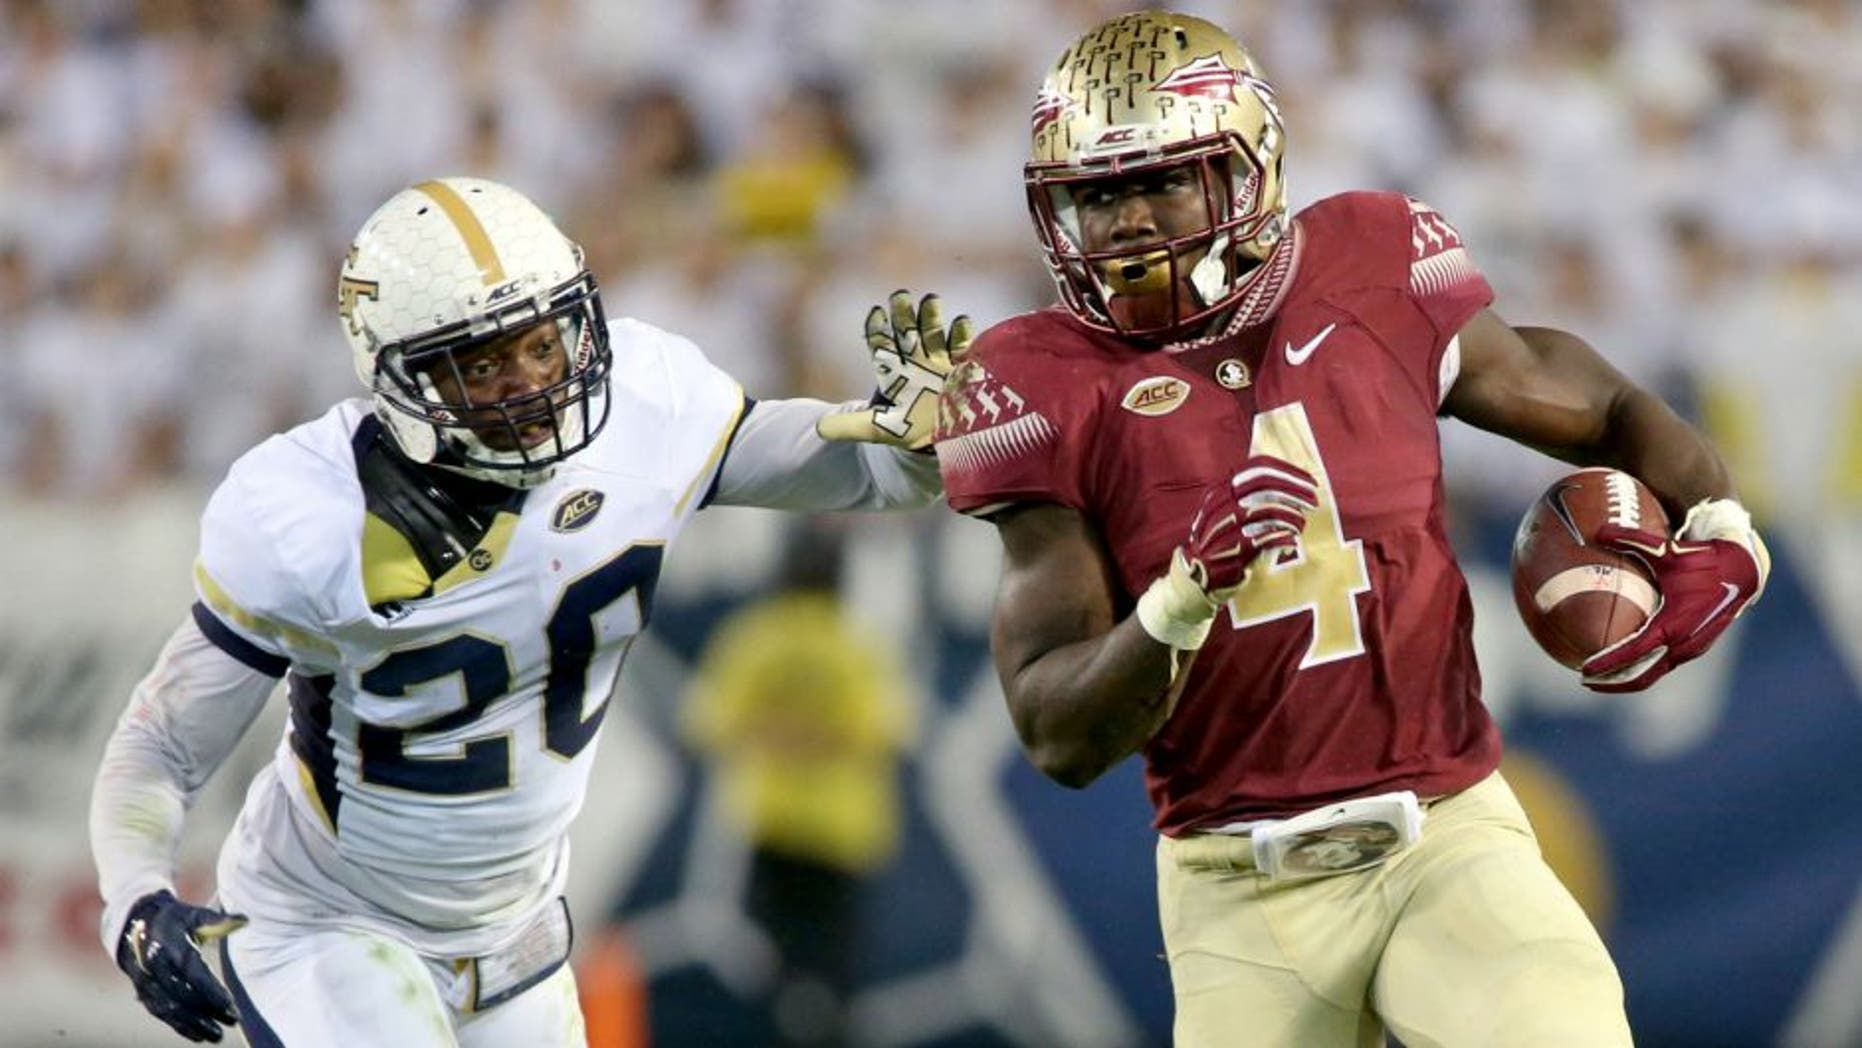 Oct 24, 2015; Atlanta, GA, USA; Florida State Seminoles running back Dalvin Cook (4) runs against Georgia Tech Yellow Jackets defensive back Lawrence Austin (20) in the second quarter of their game at Bobby Dodd Stadium. Mandatory Credit: Jason Getz-USA TODAY Sports